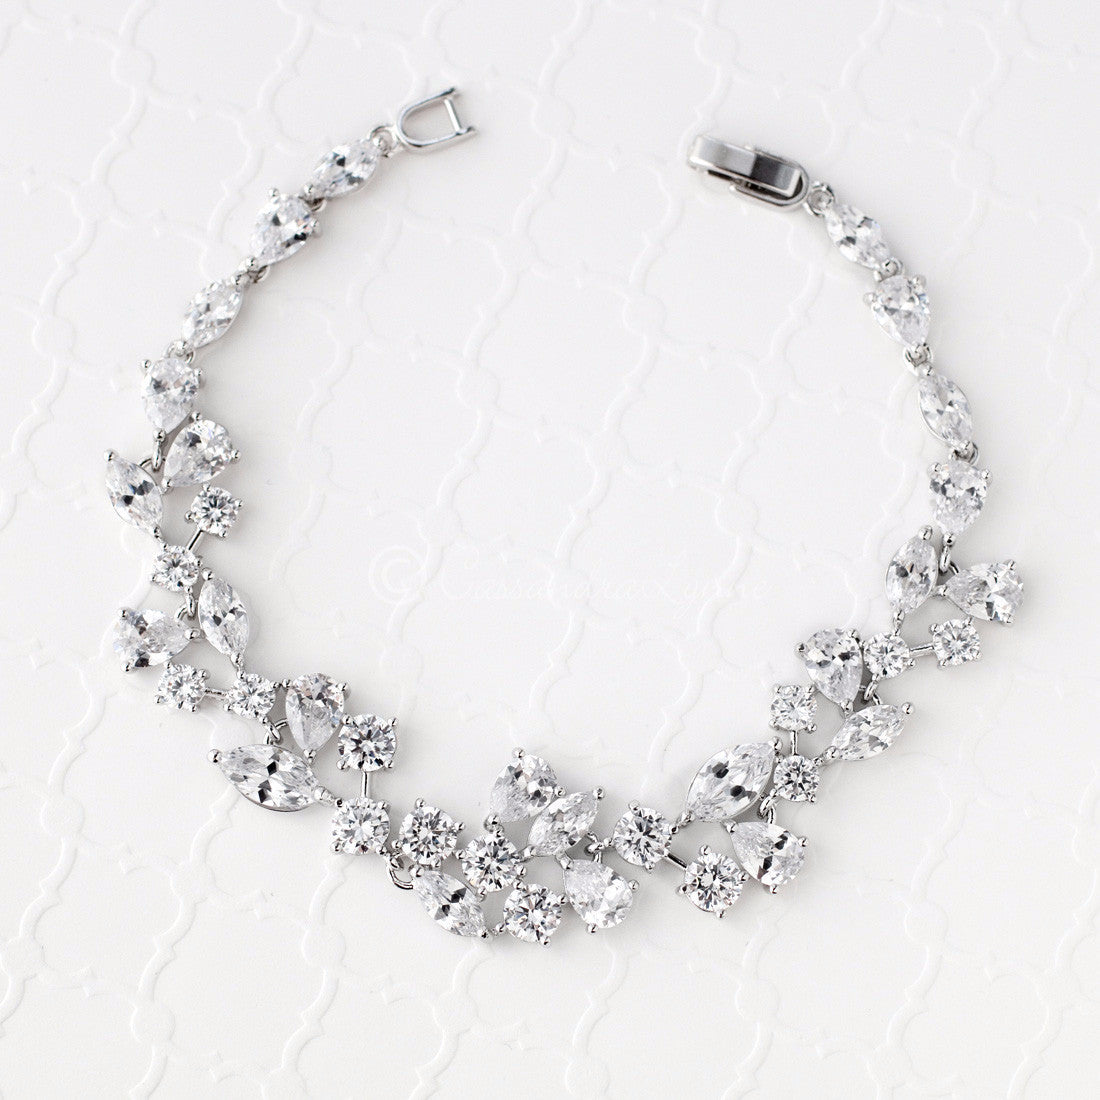 Bridal Bracelet of CZ Teardrop Round Marquise Jewels